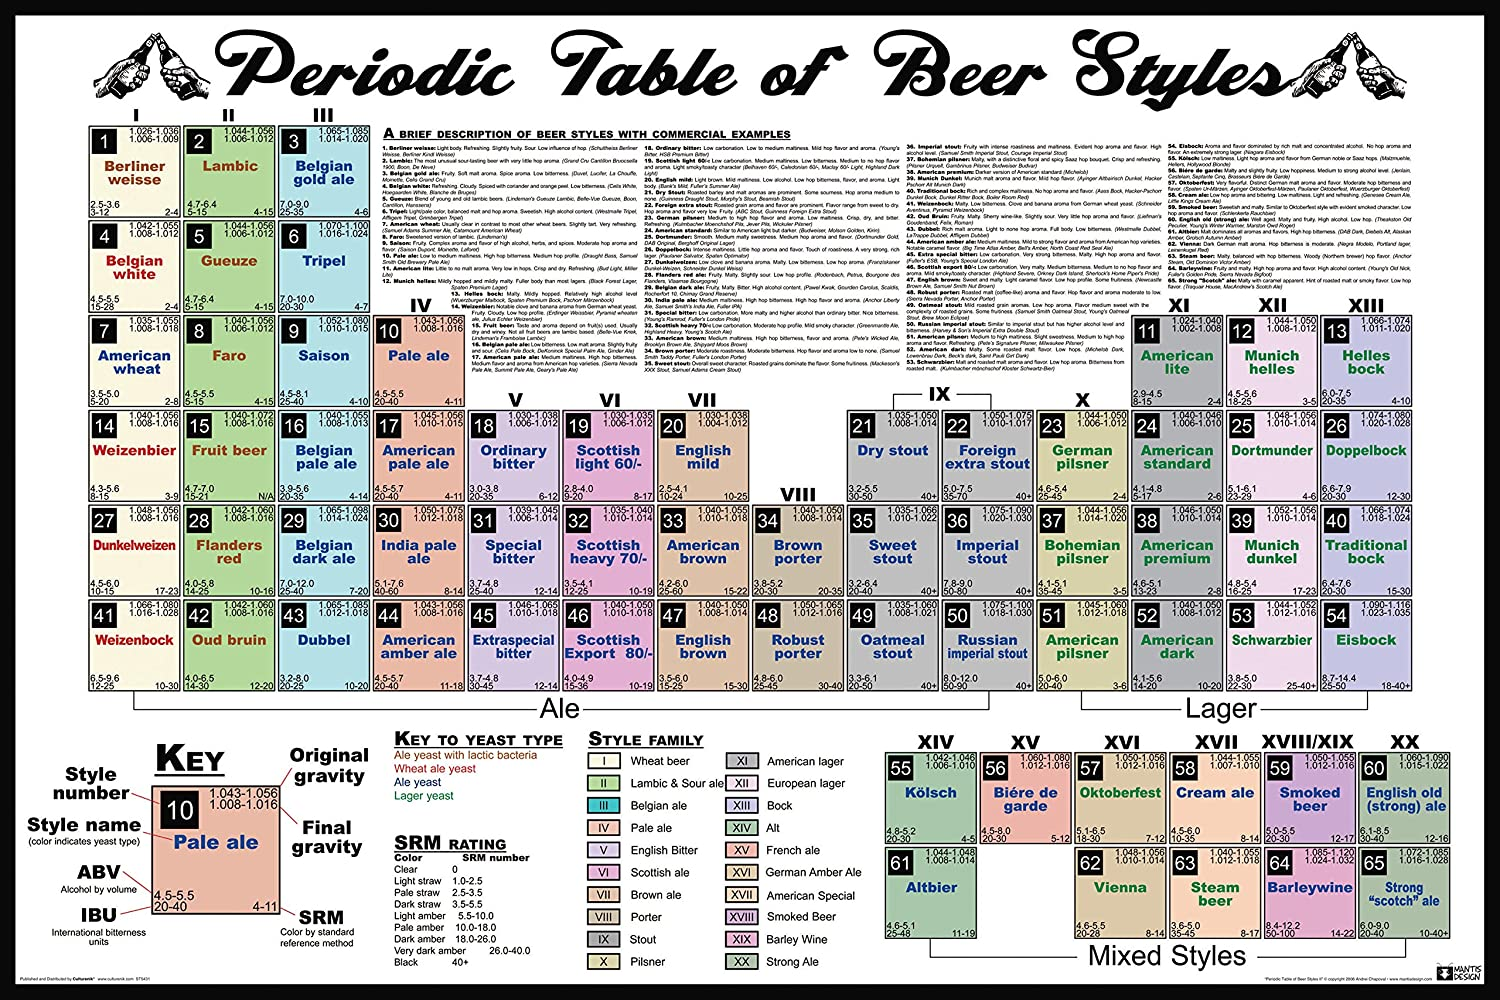 Amazon periodic table of beer styles alcohol booze table amazon periodic table of beer styles alcohol booze table novelty drinking college humor poster print 24x36 posters prints gamestrikefo Gallery